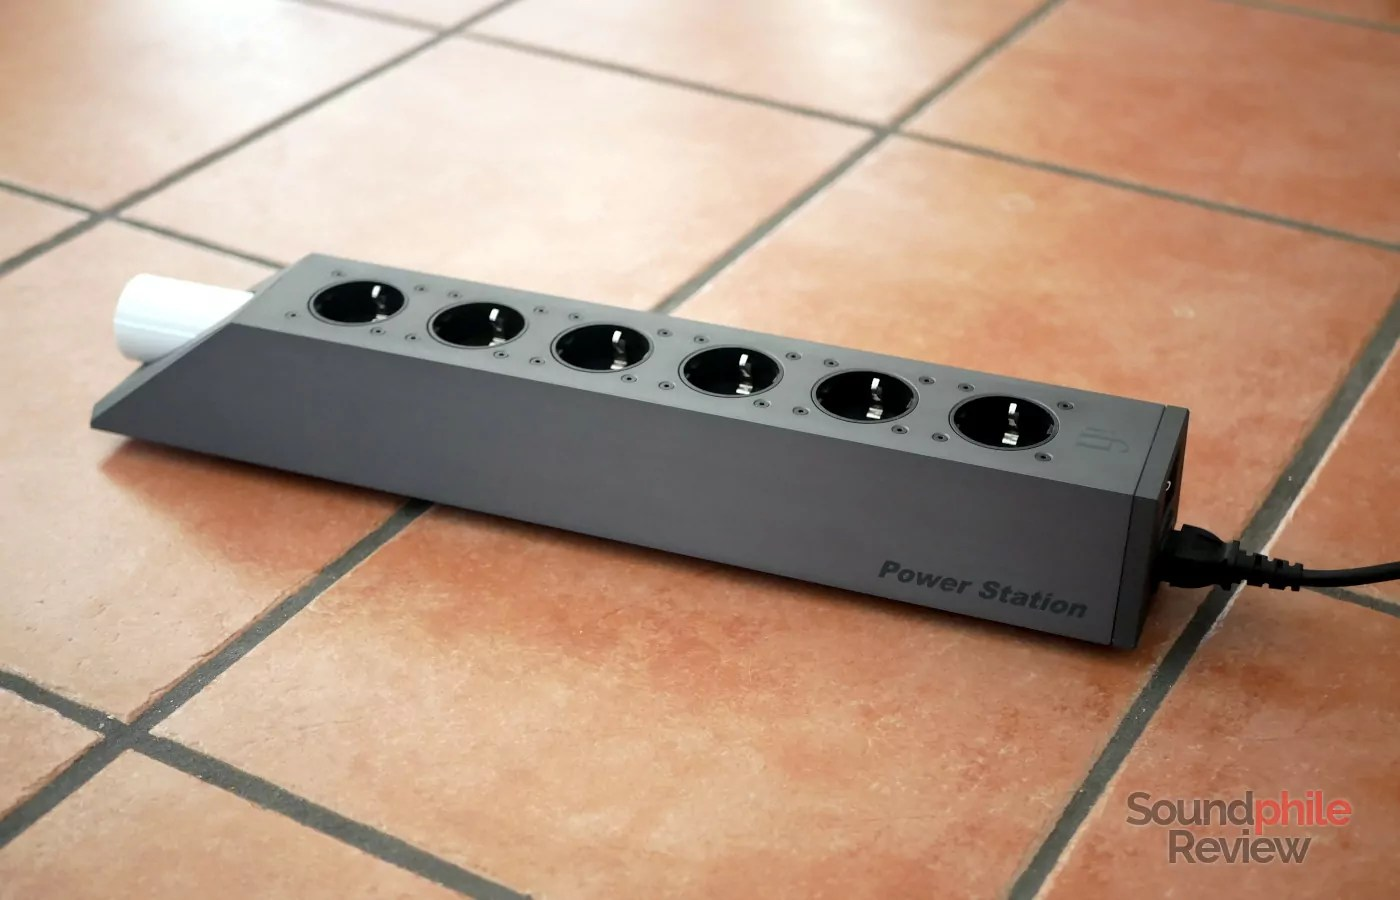 iFi Power Station review